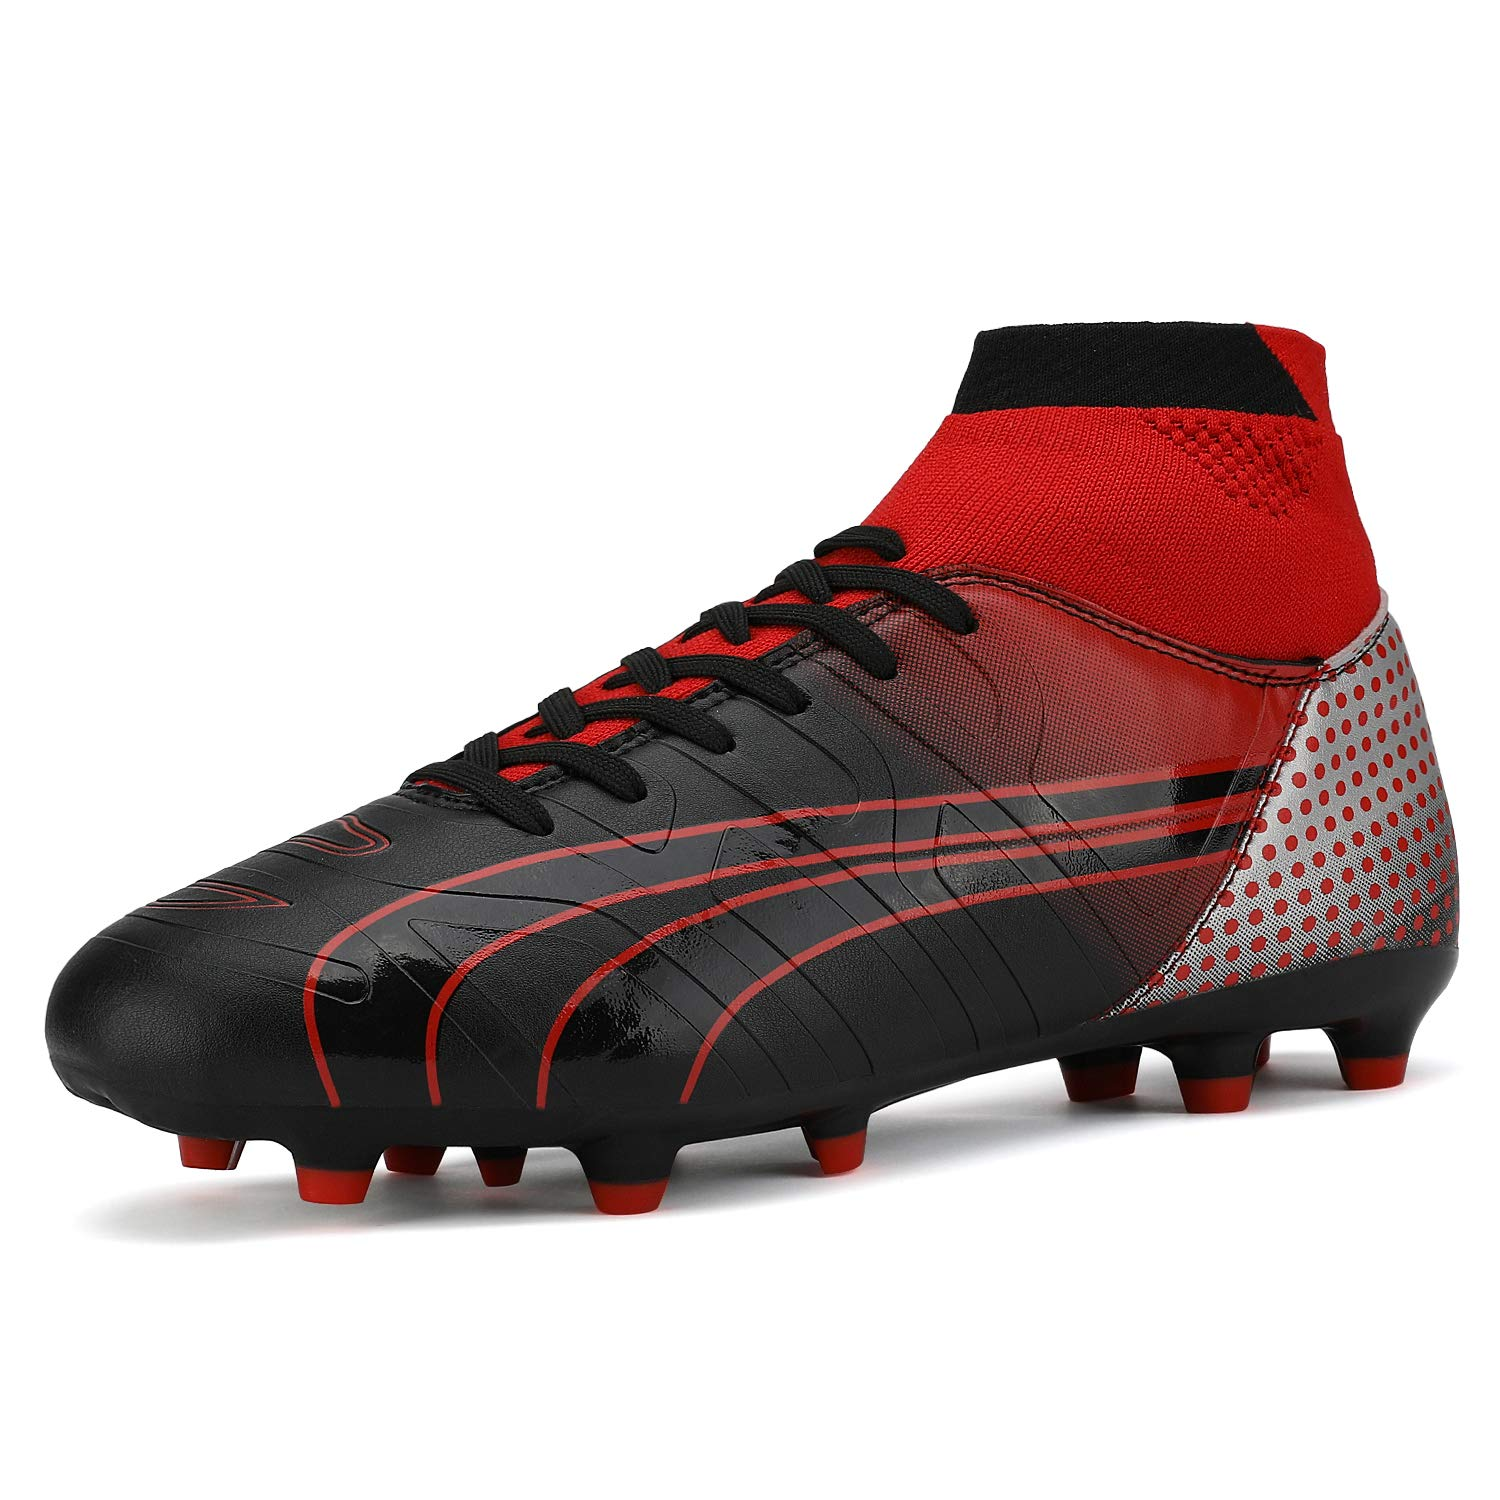 DREAM PAIRS Men's 160862-M Red Black Lt.Grey Cleats Football Soccer Shoes - 8 M US by DREAM PAIRS